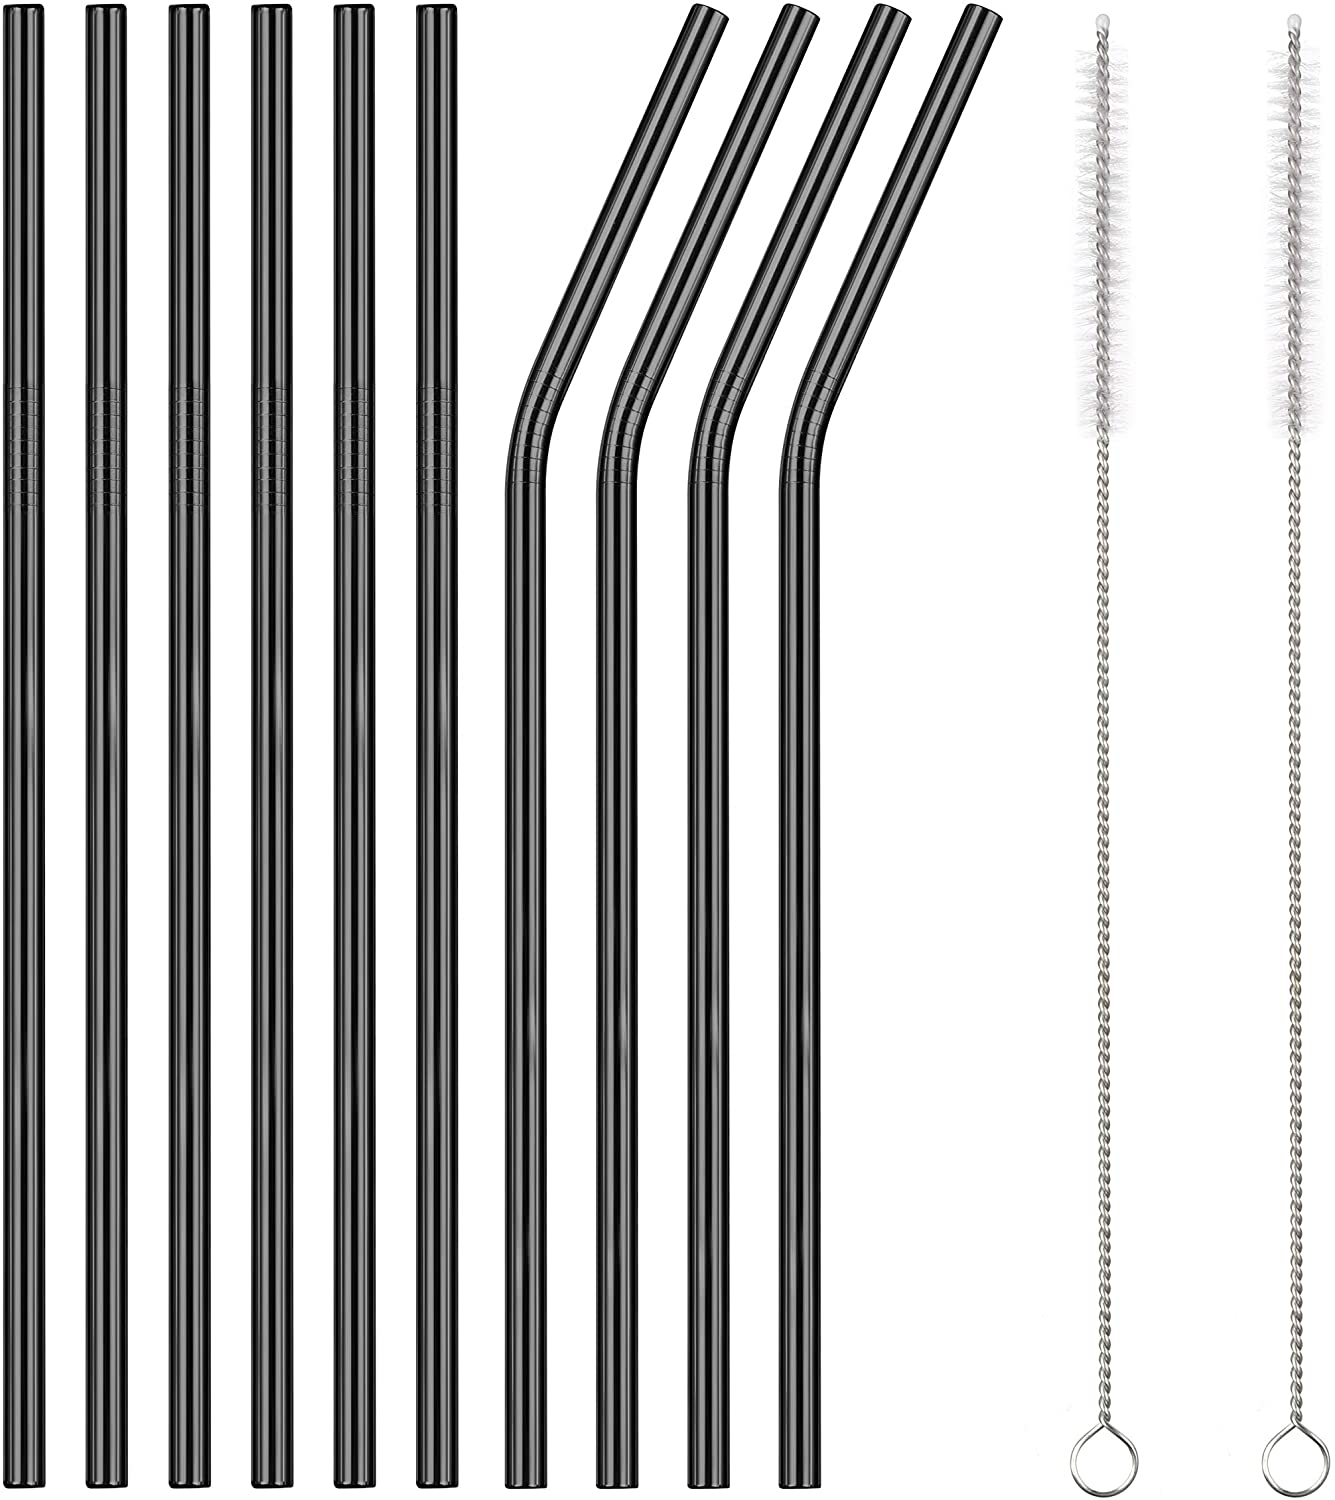 TDGOM 5 Color 12-Pack Stainless Steel Metal Straws Reusable with 2 Cleaning Brushes - Curved Drinking Straws for 20oz Tumblers Dishwasher Safe (Black)